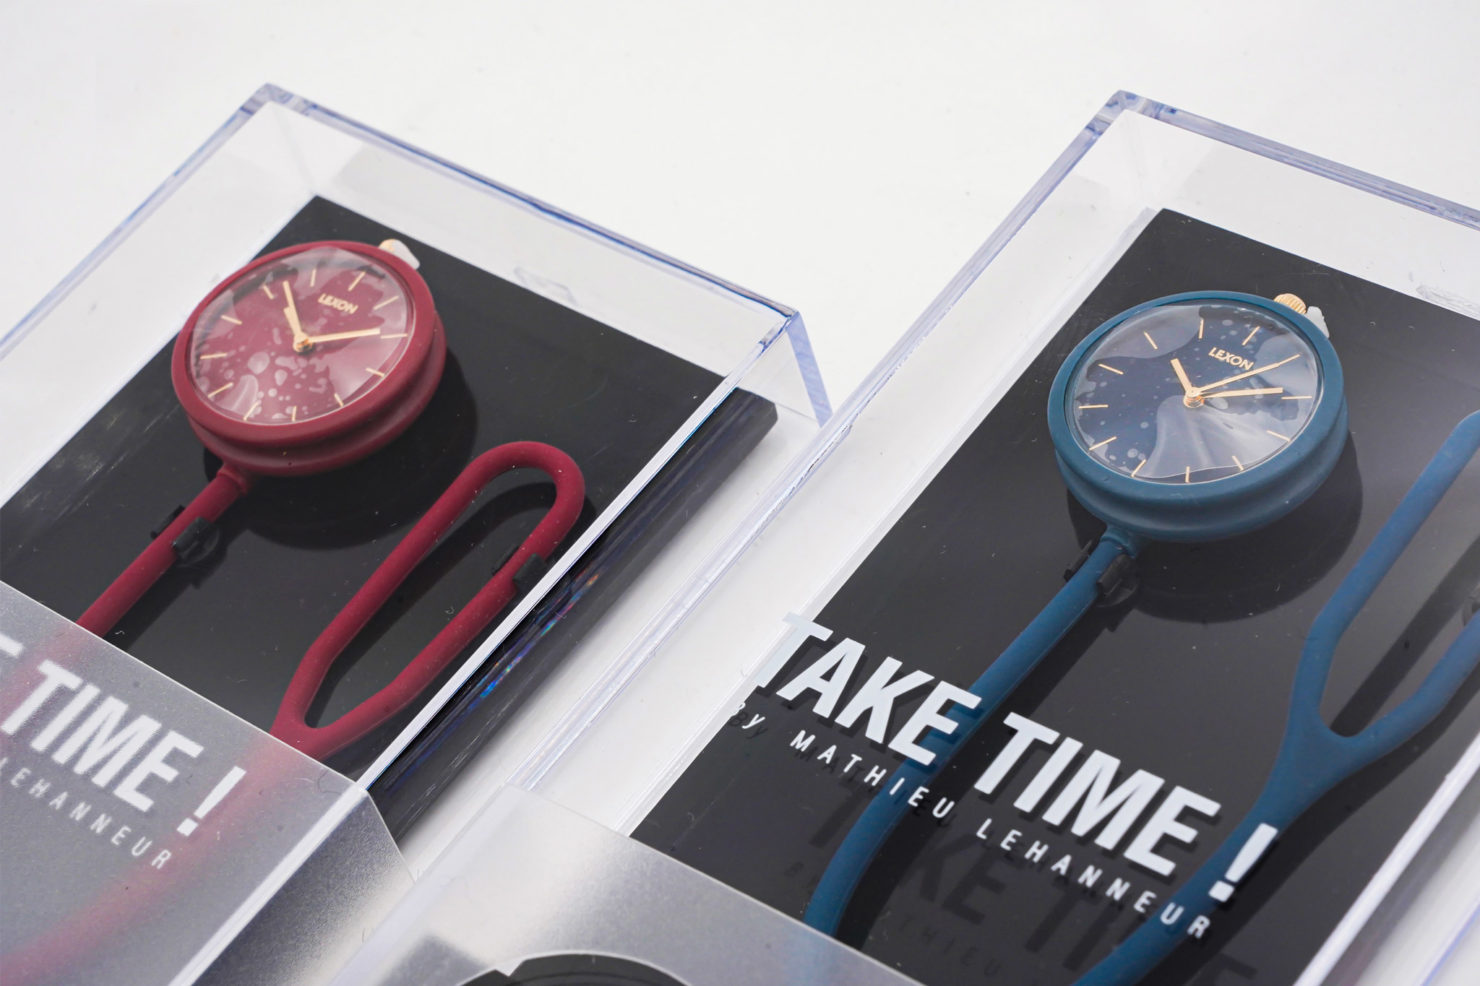 TAKE TIME ORIGINAL ANALOGIC WATCH ABS/SILICON - LEXON